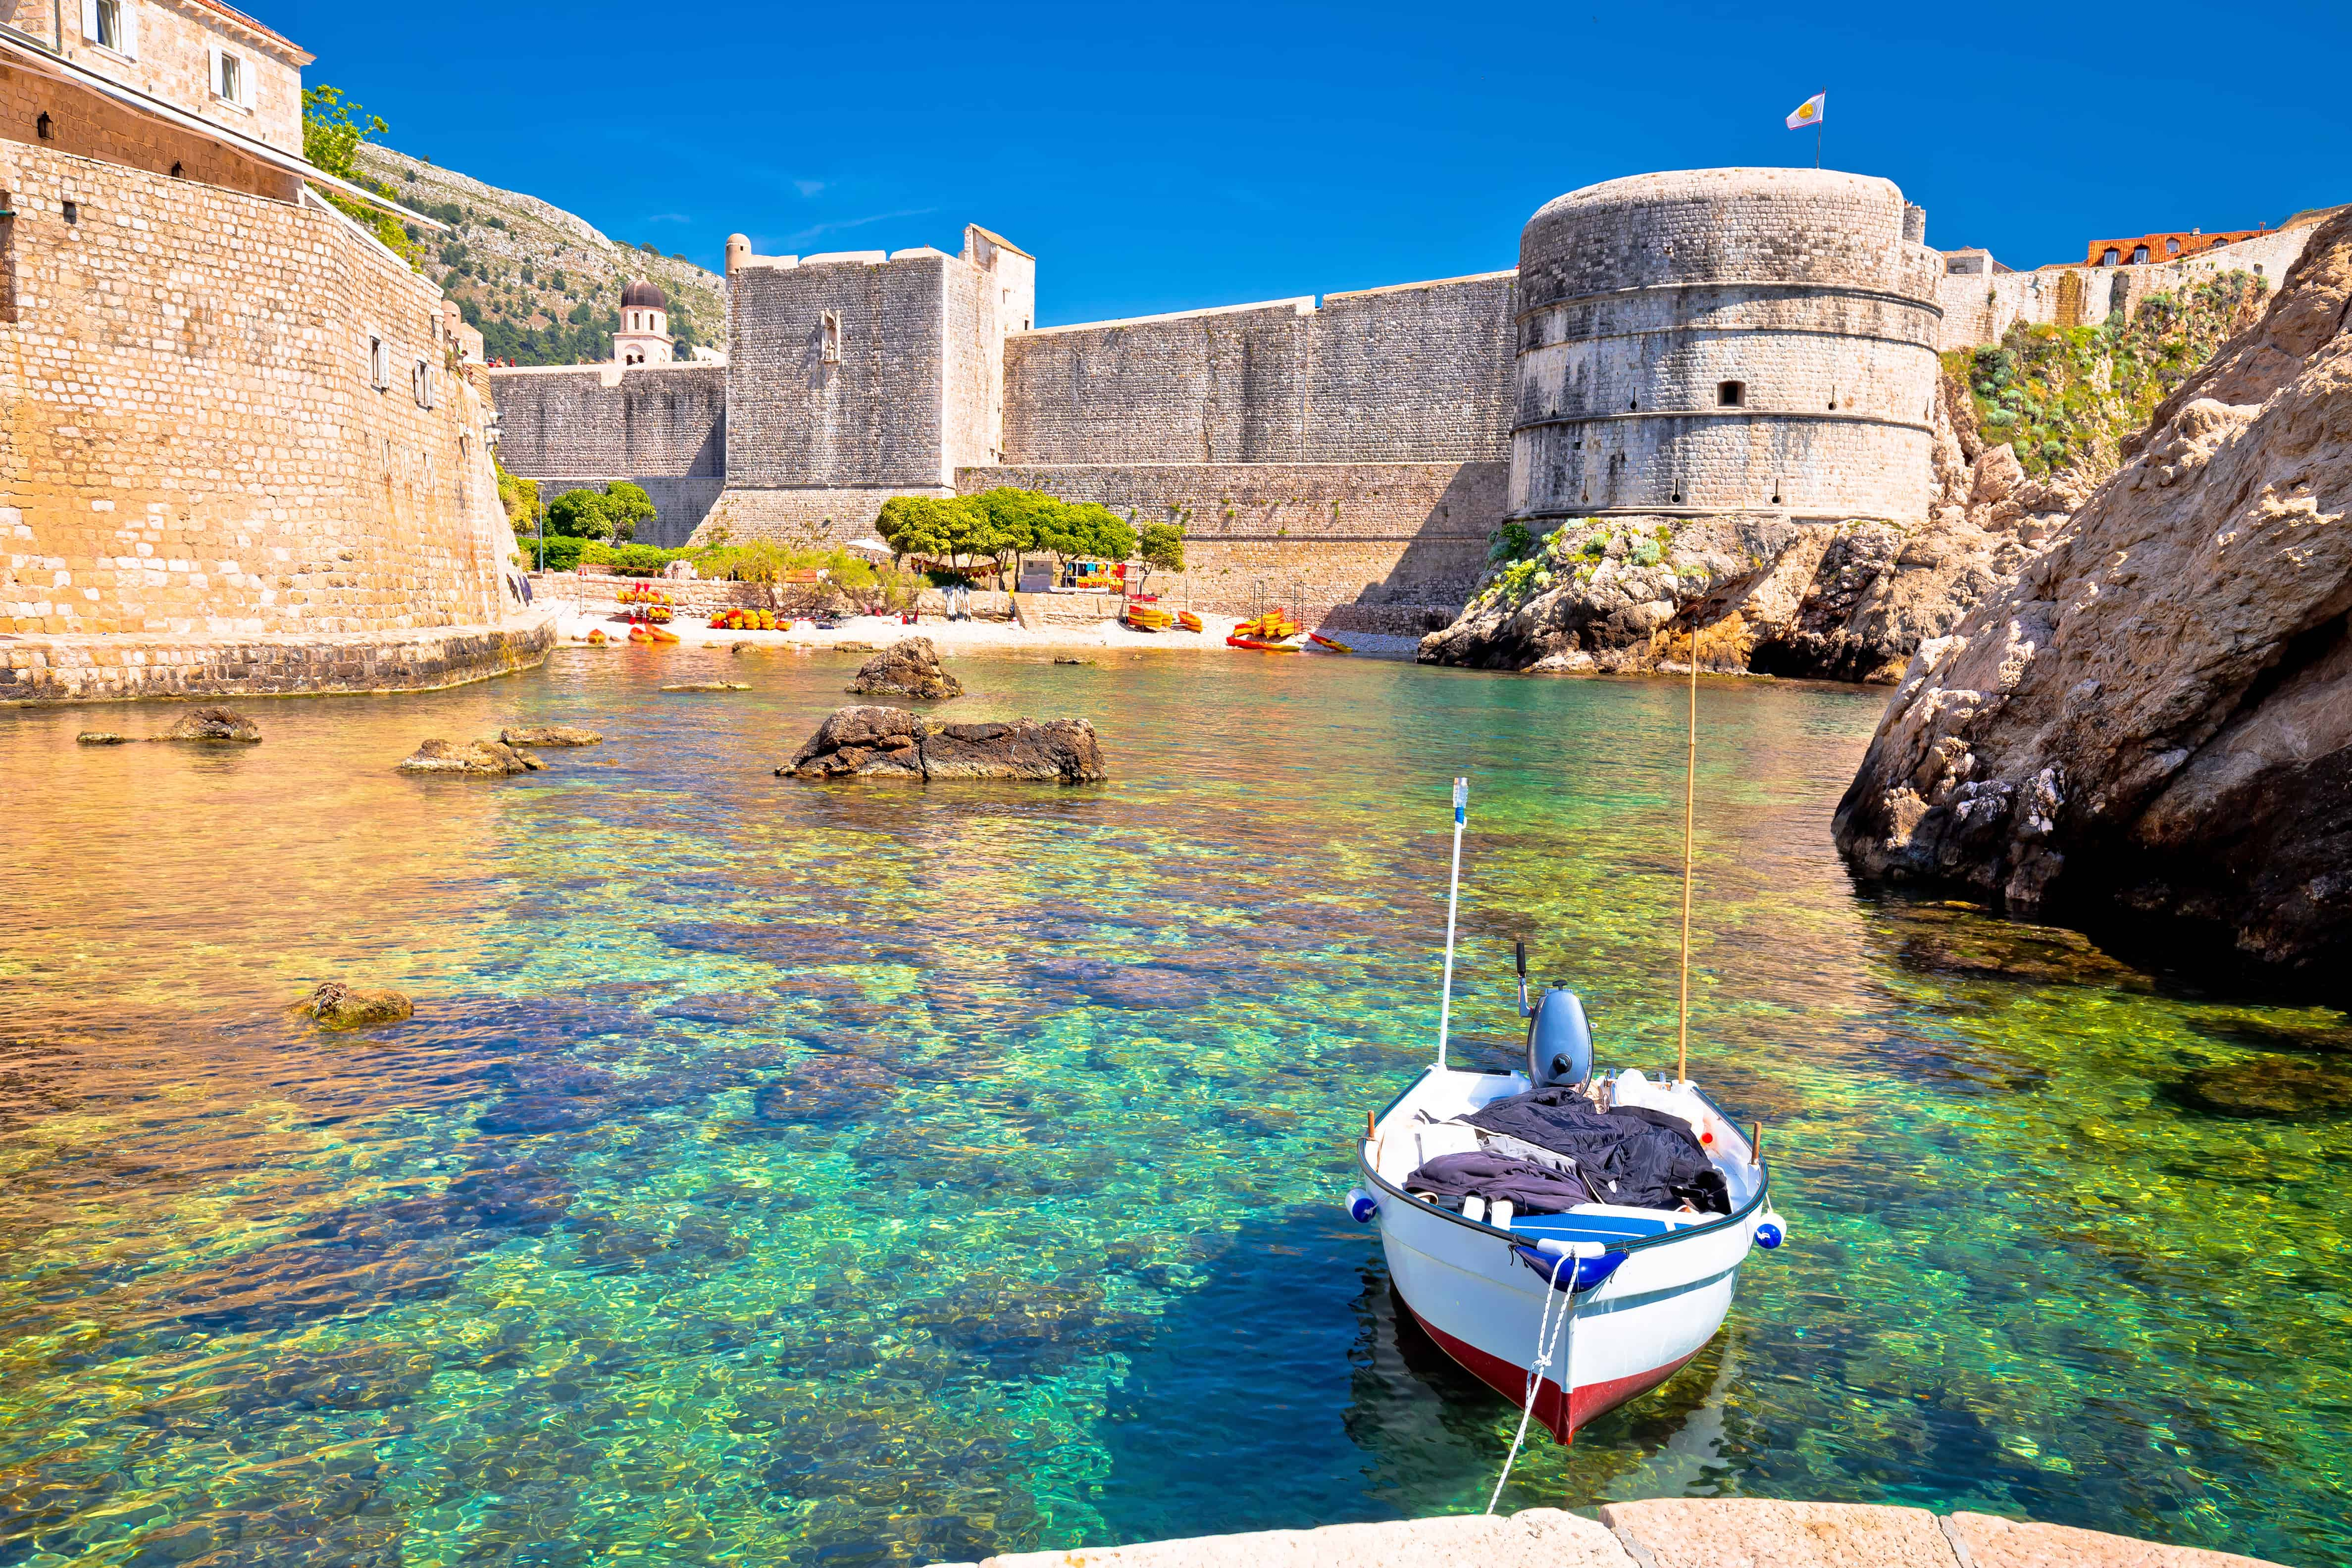 Top Old Town highlights of Dubrovnik